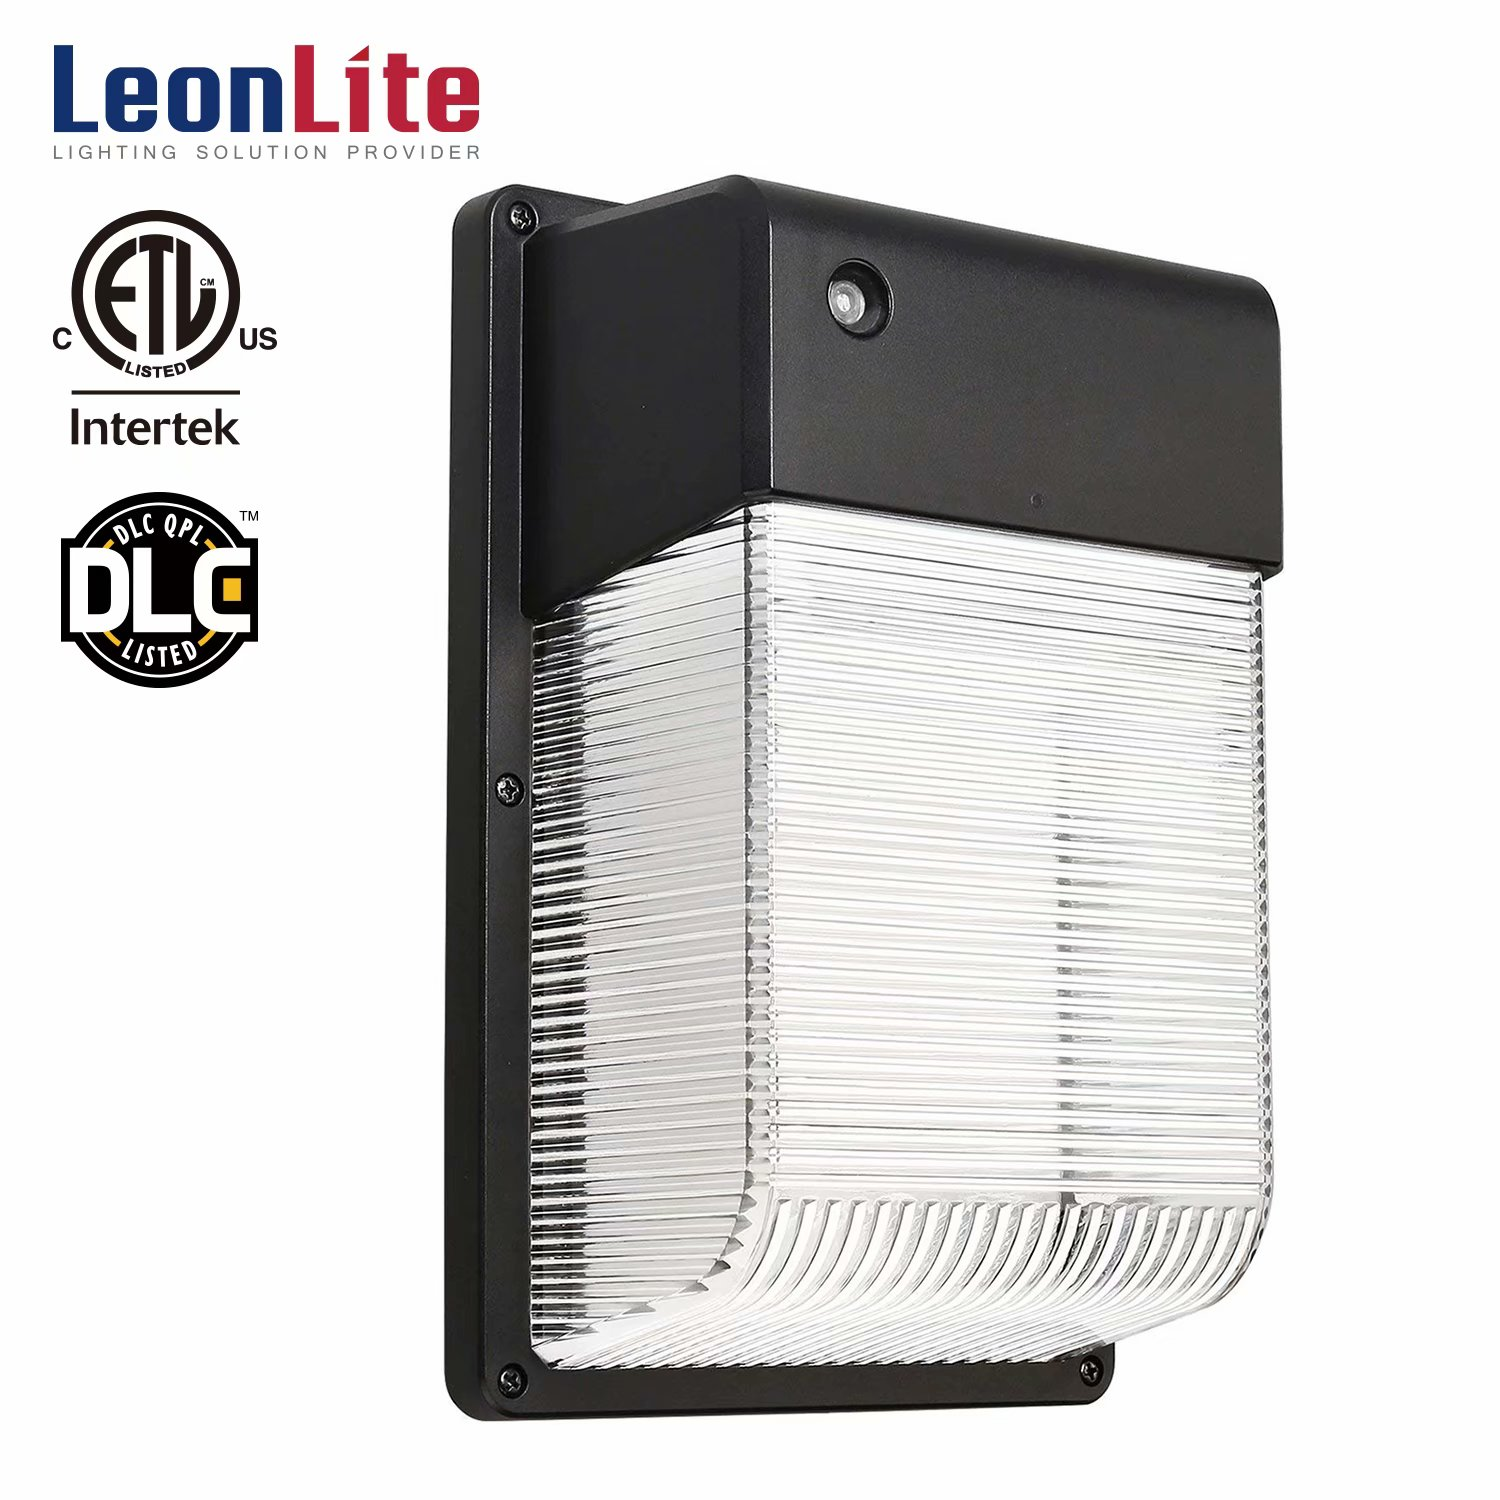 LEONLITE 16W Dusk to Dawn LED Wall Lights, LED Security Lights, Outdoor LED Wall Lighting, 5000K Daylight